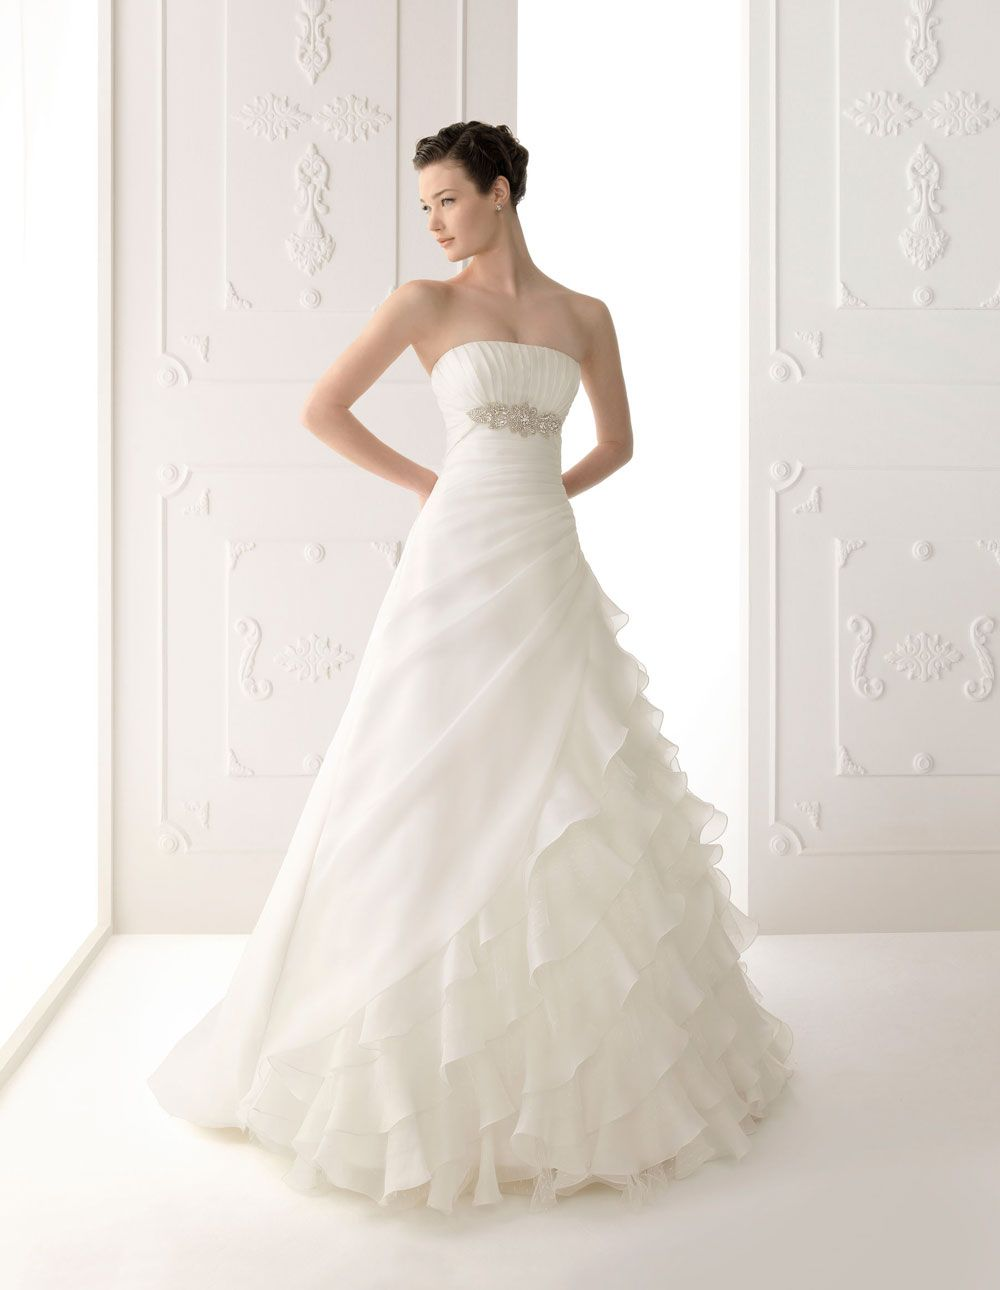 Alma Novia Sultan Amy Stults Pinterest Dream Dress